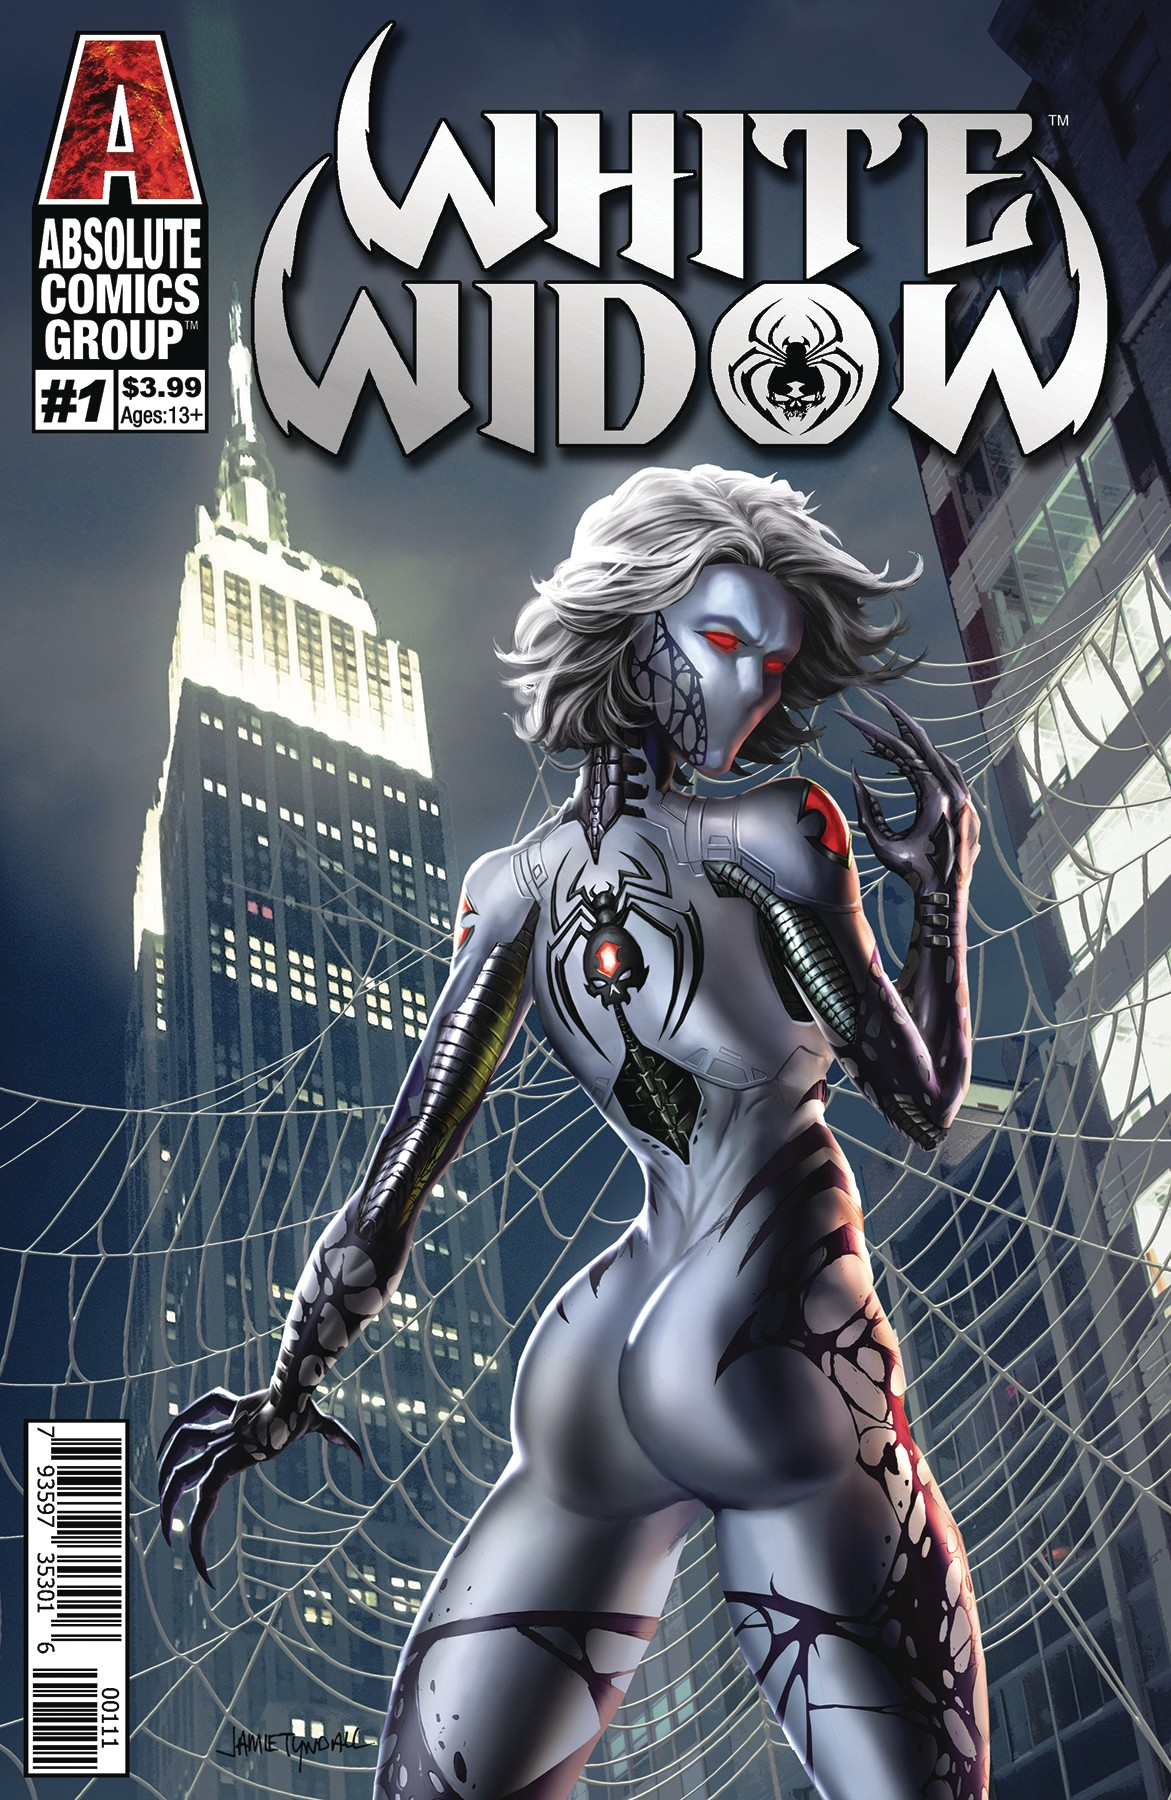 Review: White Widow #1